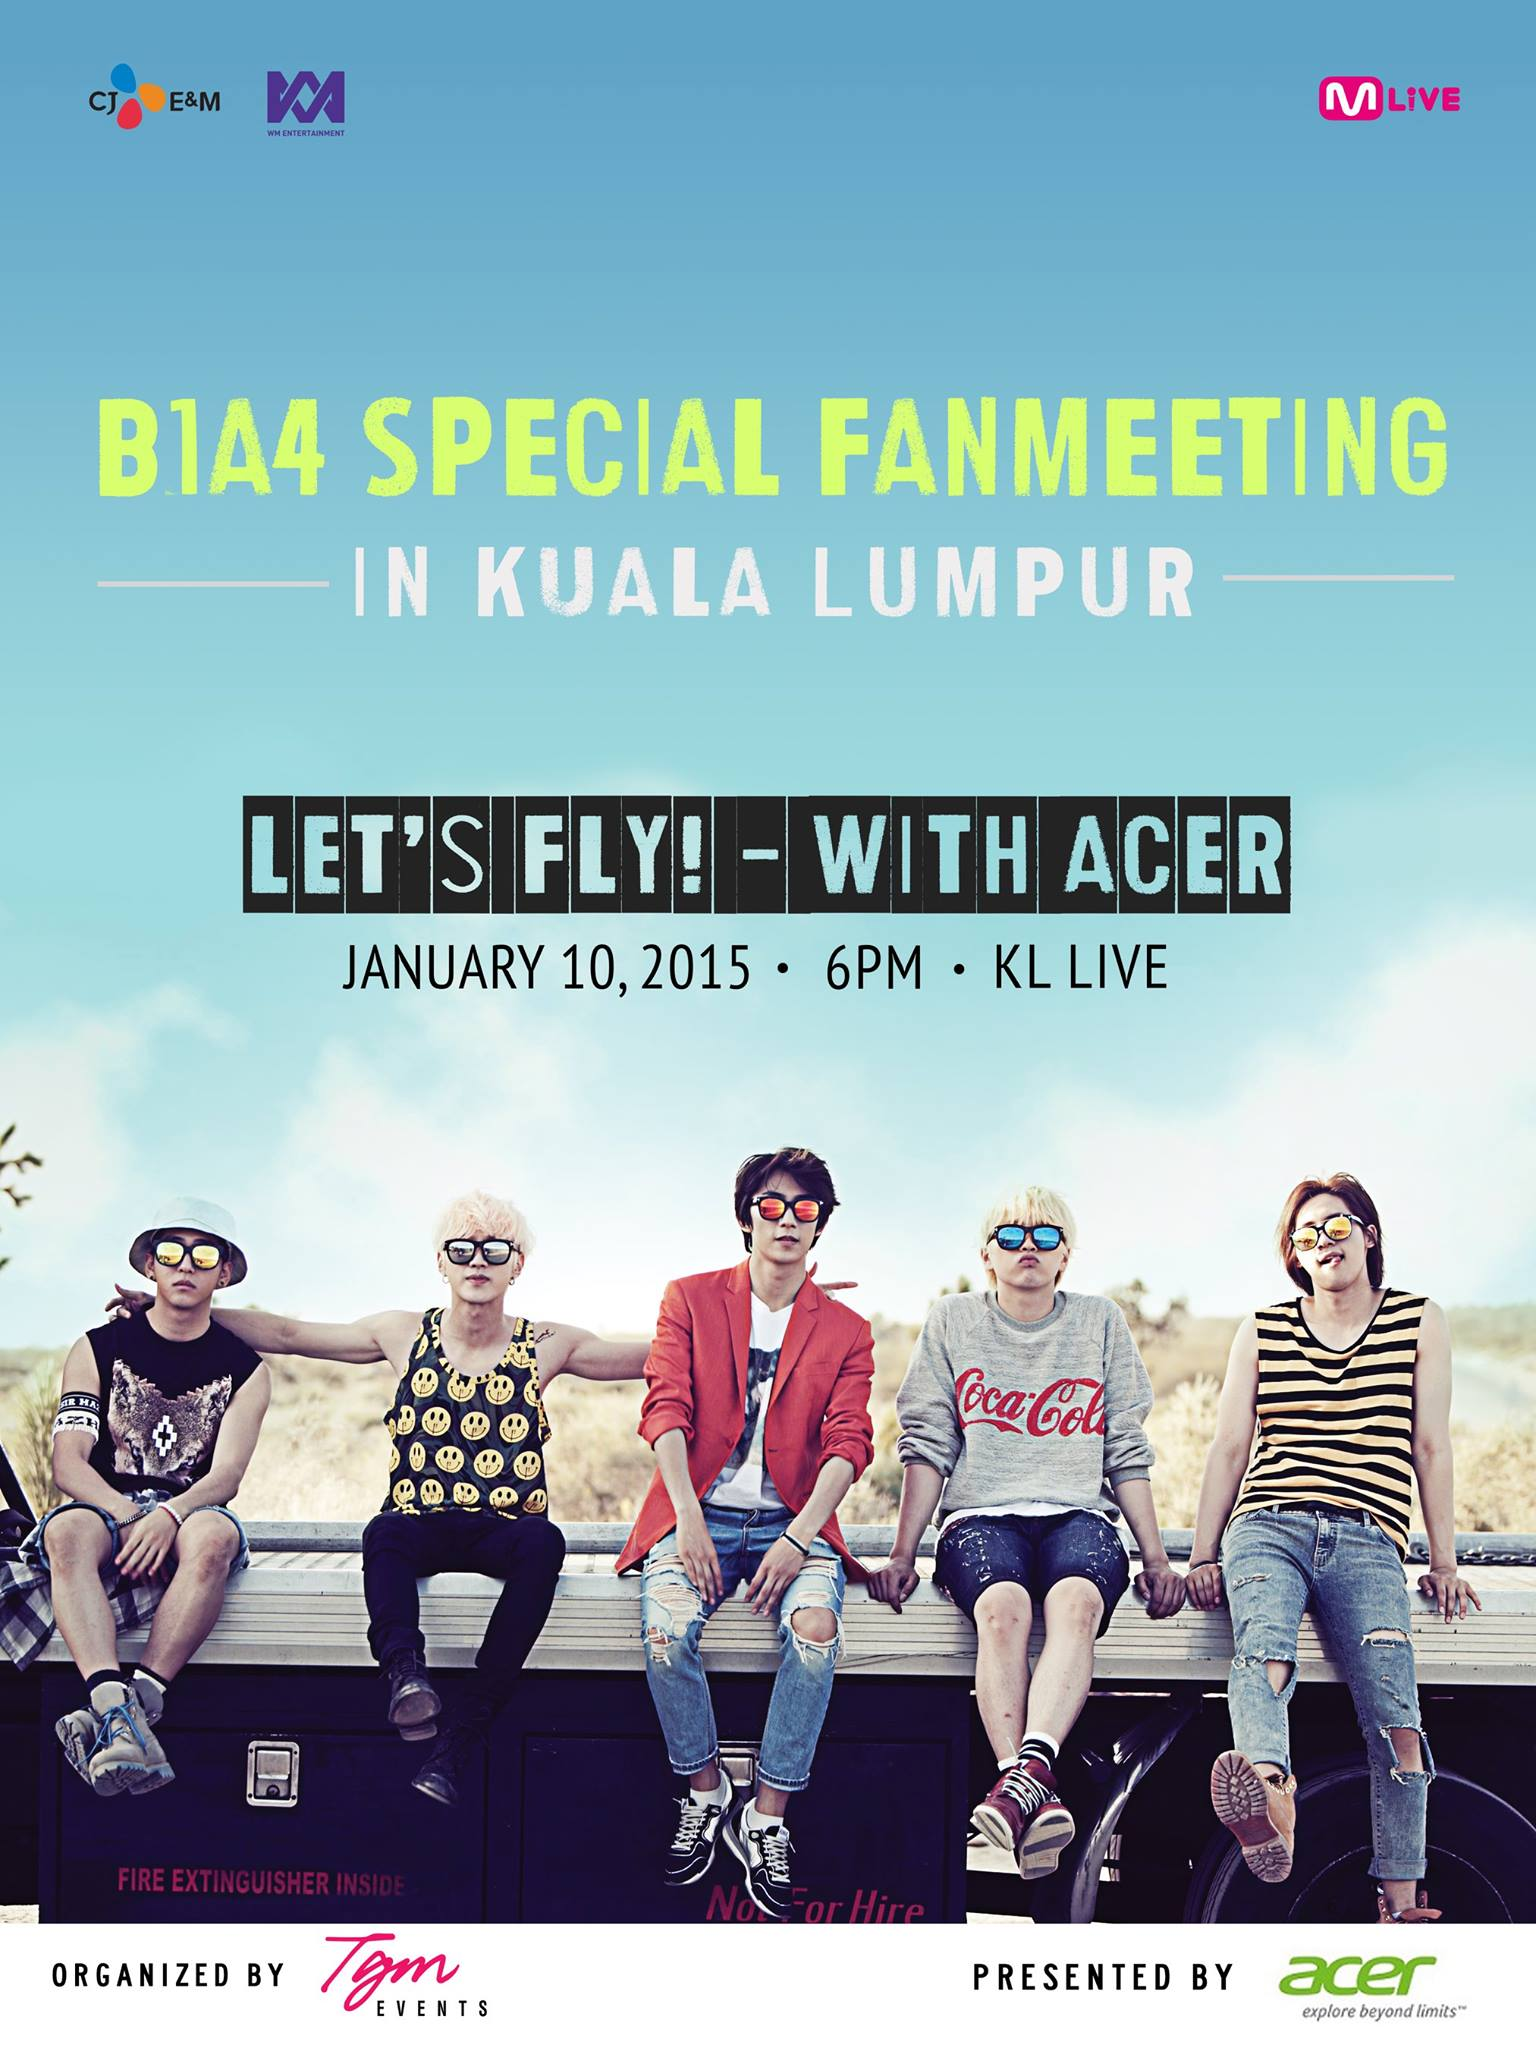 B1A4 Special fan meeting in Kuala Lumpur poster